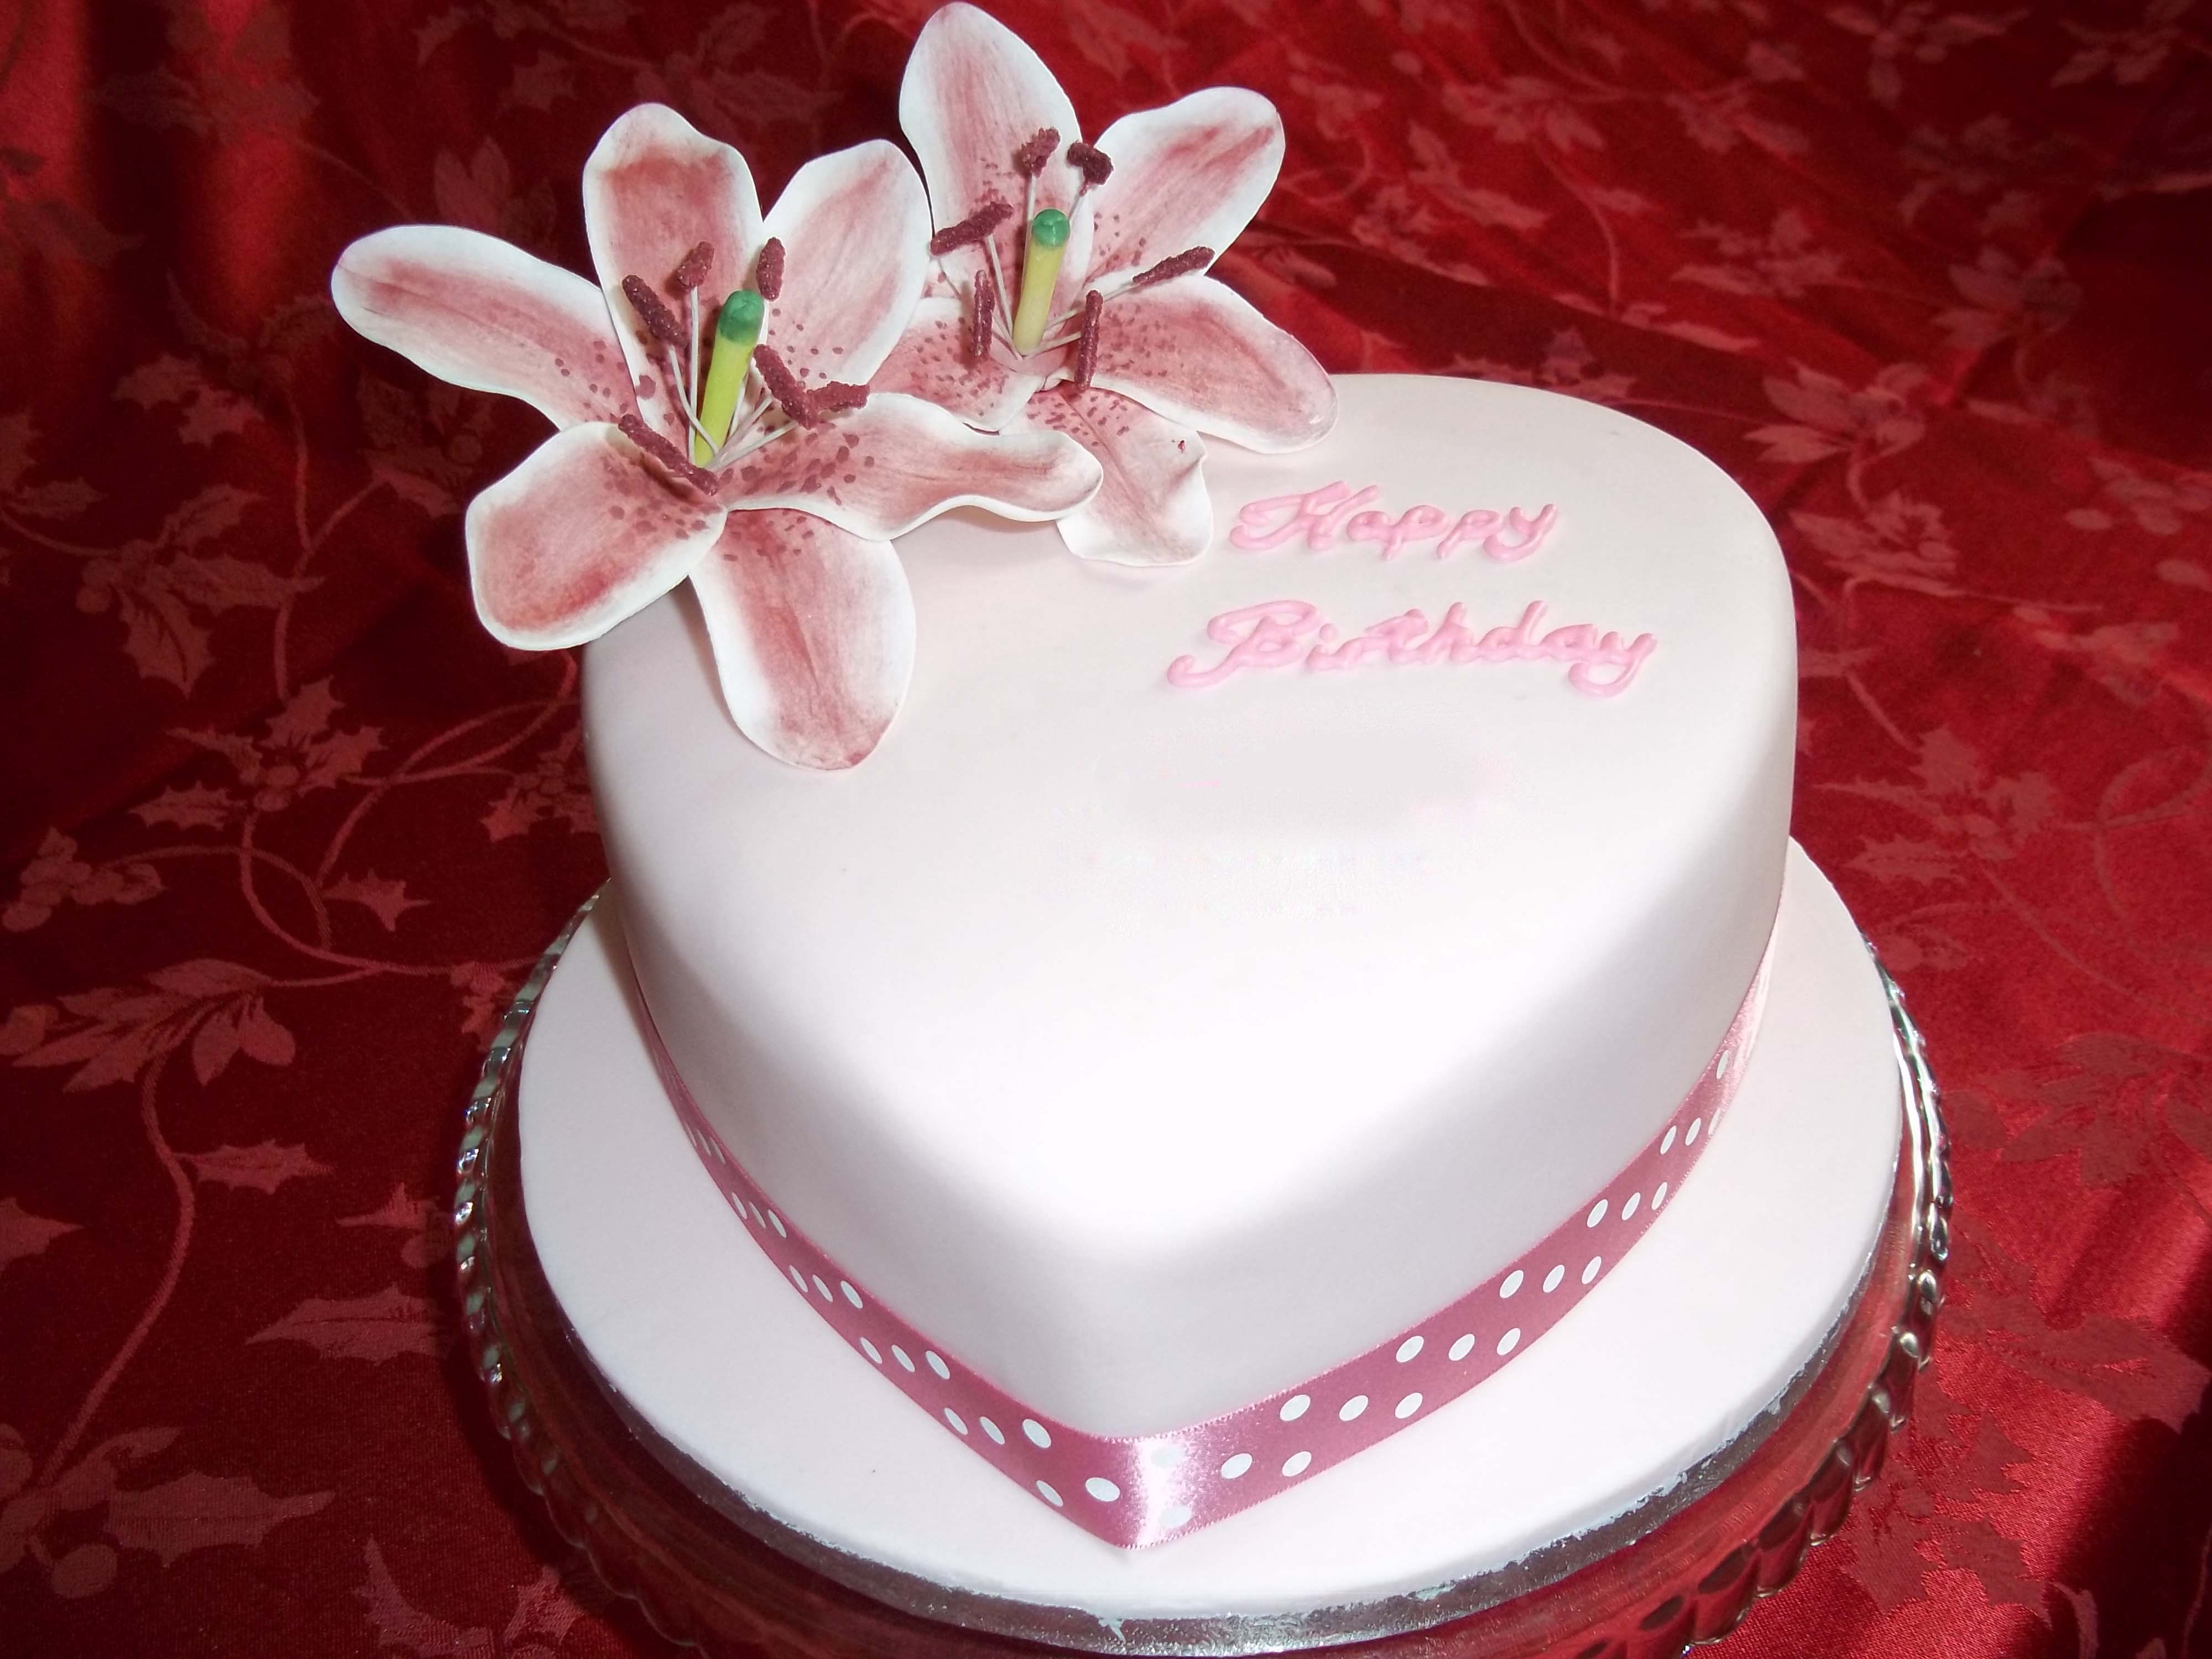 Birthday Cakes Images : Wallpapers Happy Birthday Cake - Wallpaper Cave